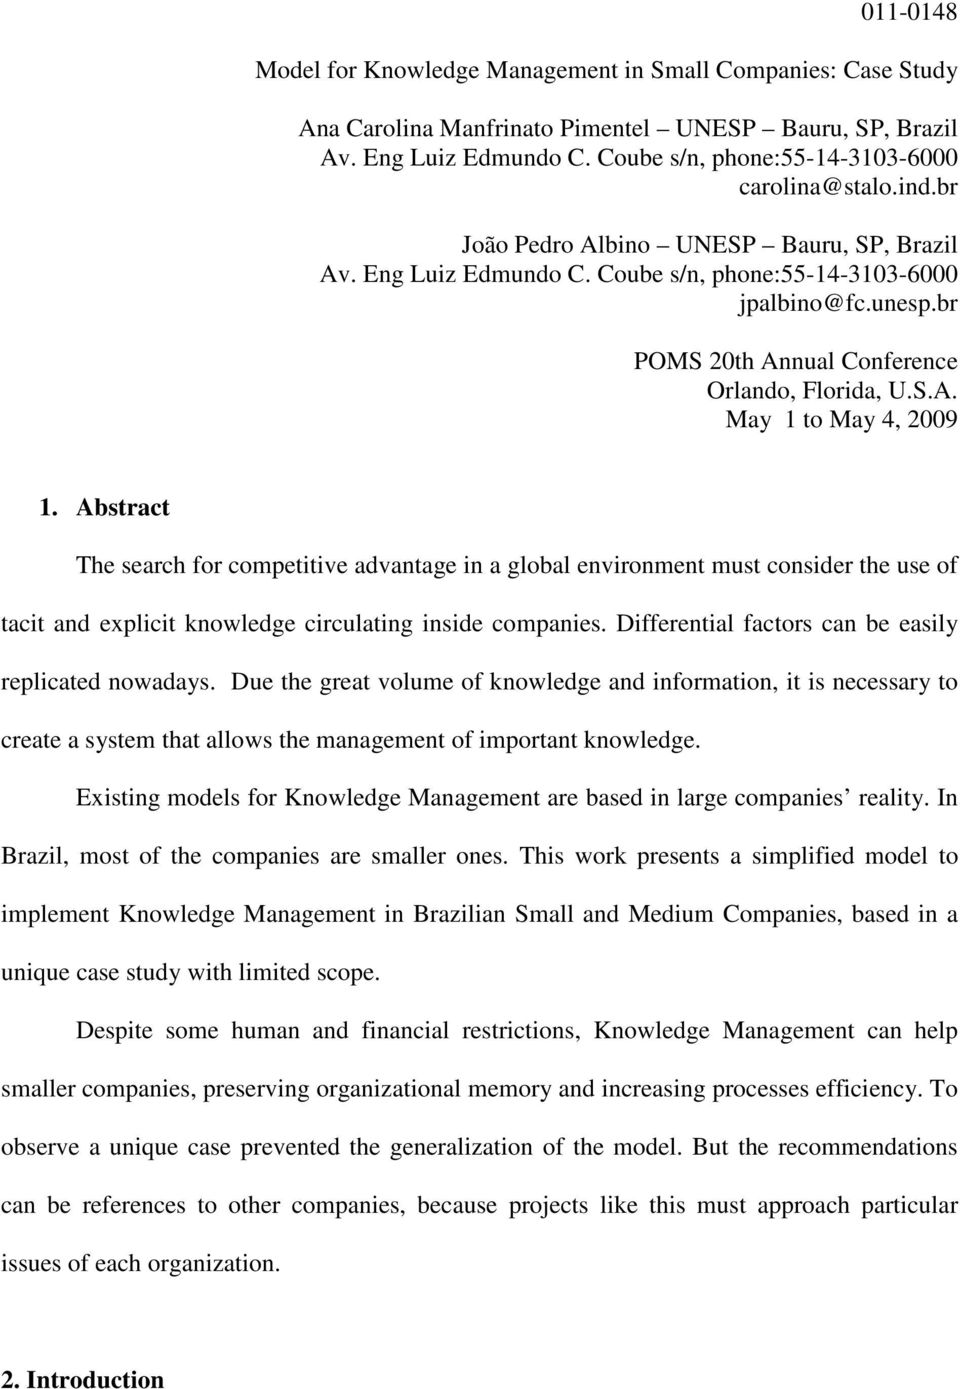 Abstract The search for competitive advantage in a global environment must consider the use of tacit and explicit knowledge circulating inside companies.